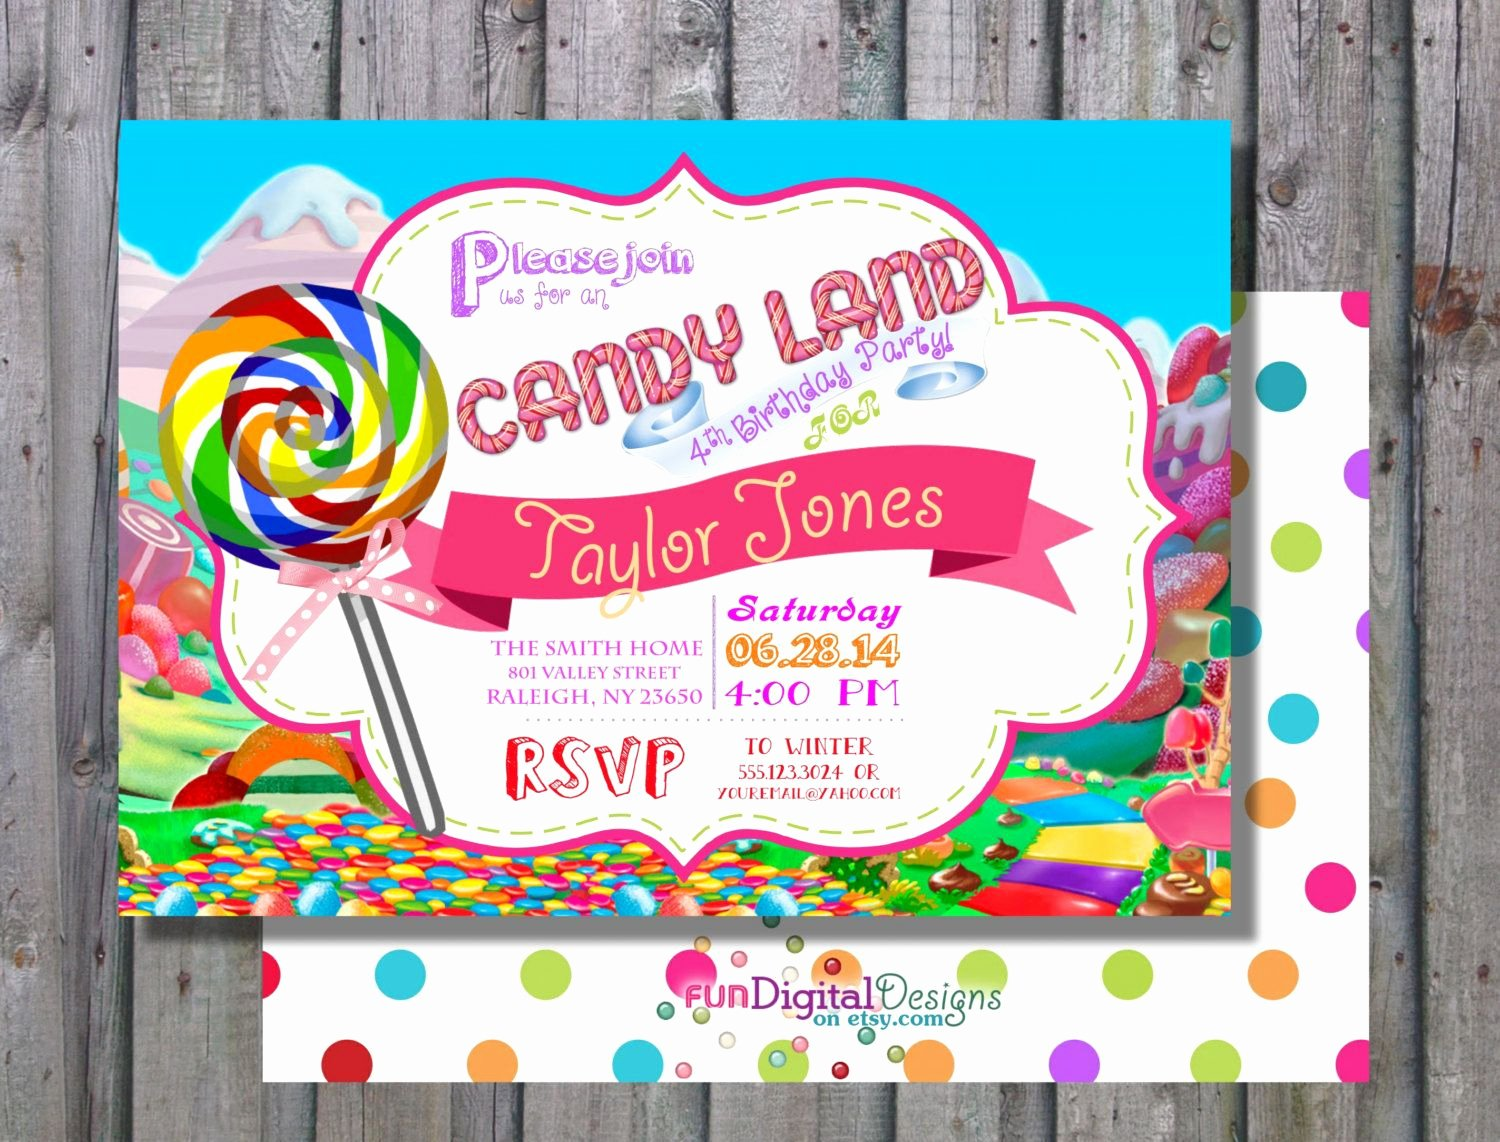 Candyland Birthday Party Invitations Unique Land Of Candy Birthday Party Candy Invitation Candy